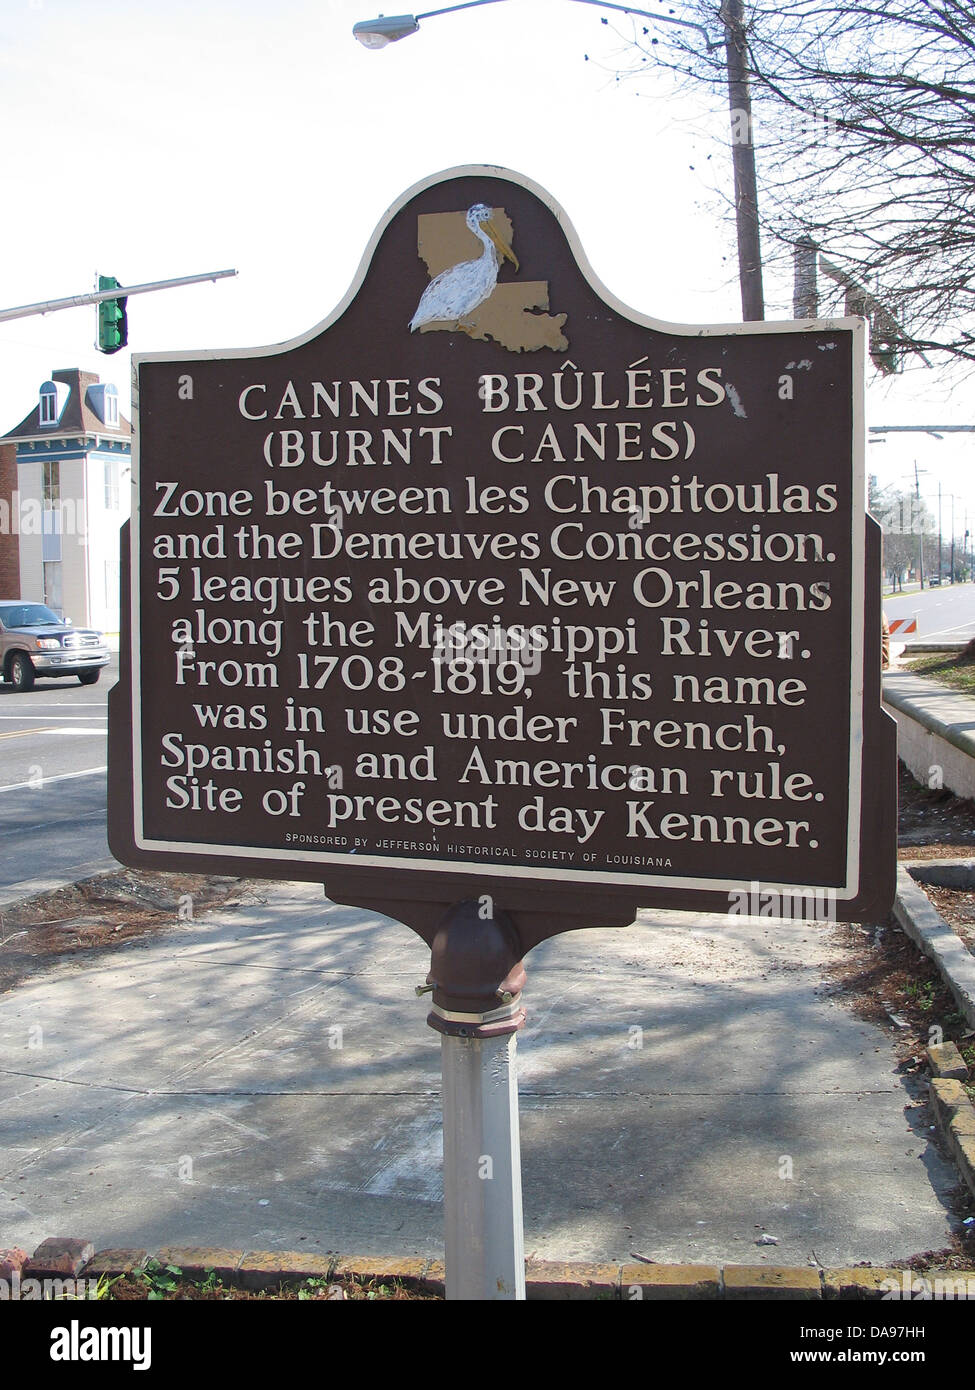 CANNES BRULESS (BURNT CANES) Zone between les Chapitoulas and the Demeuves Concession. 5 leagues above New Orleans - Stock Image